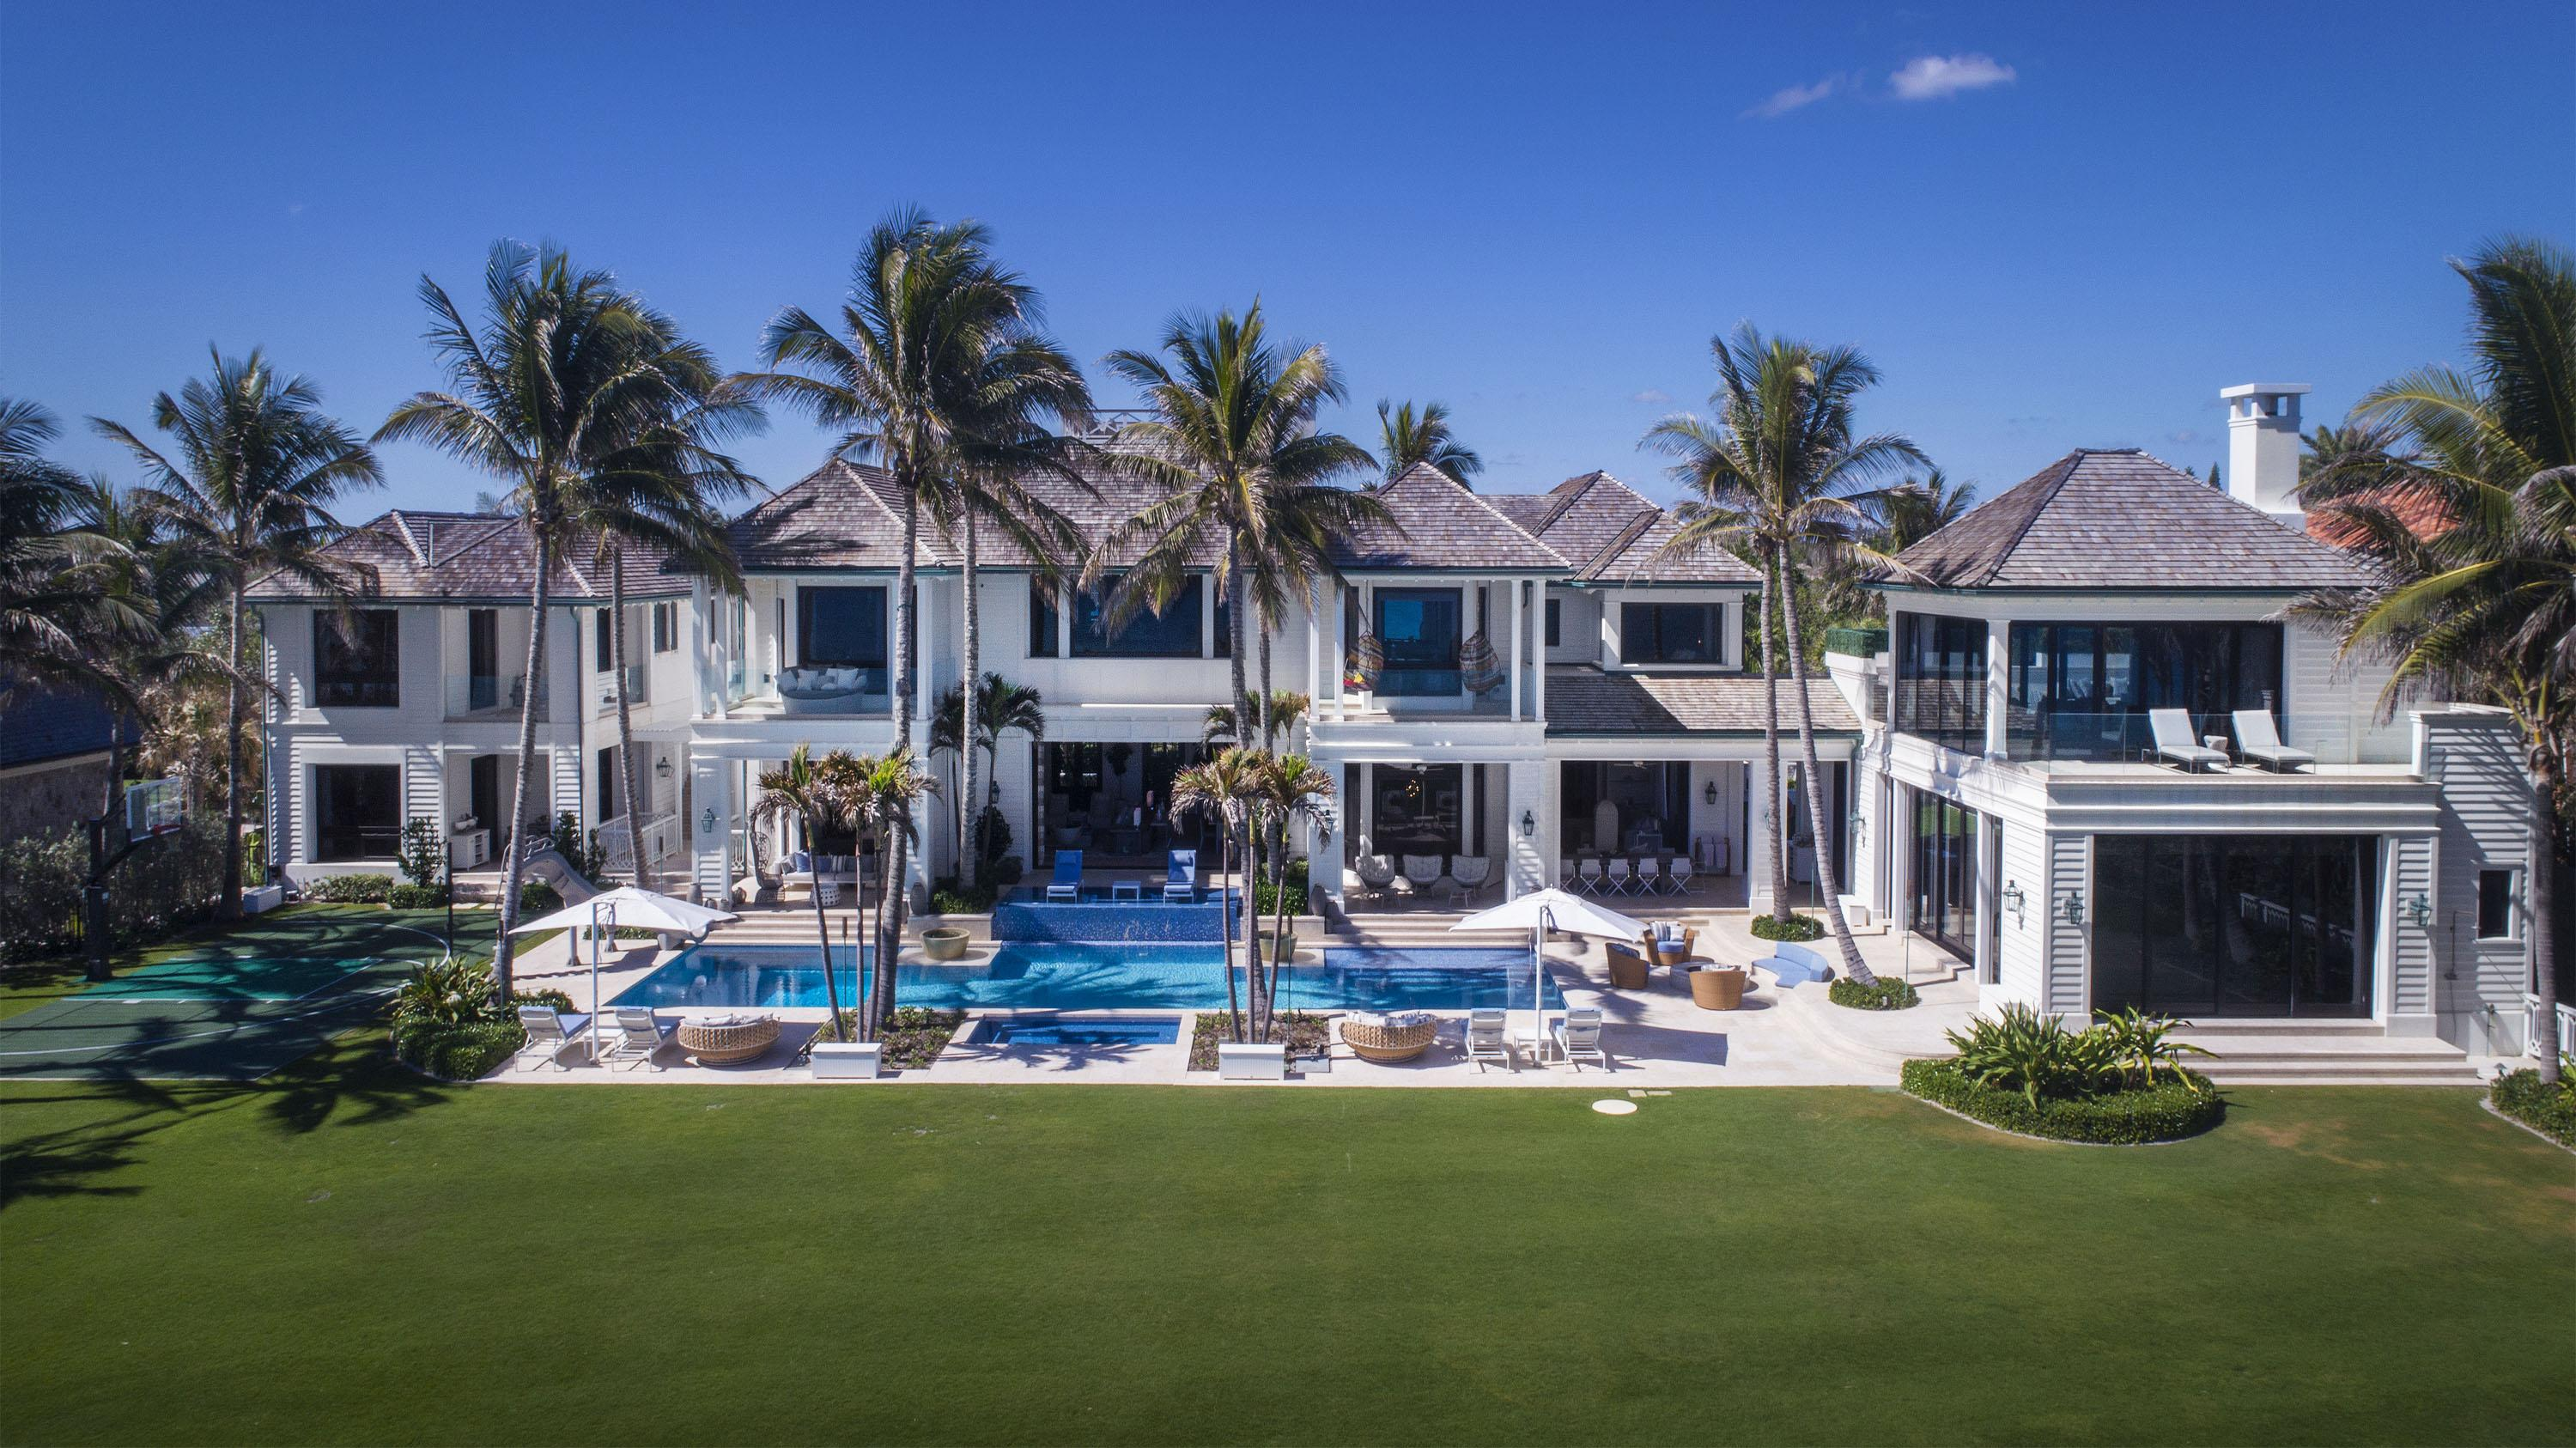 Elin Nordegren bought the luxurious mansion with the money she took from divorcing Tiger Woods